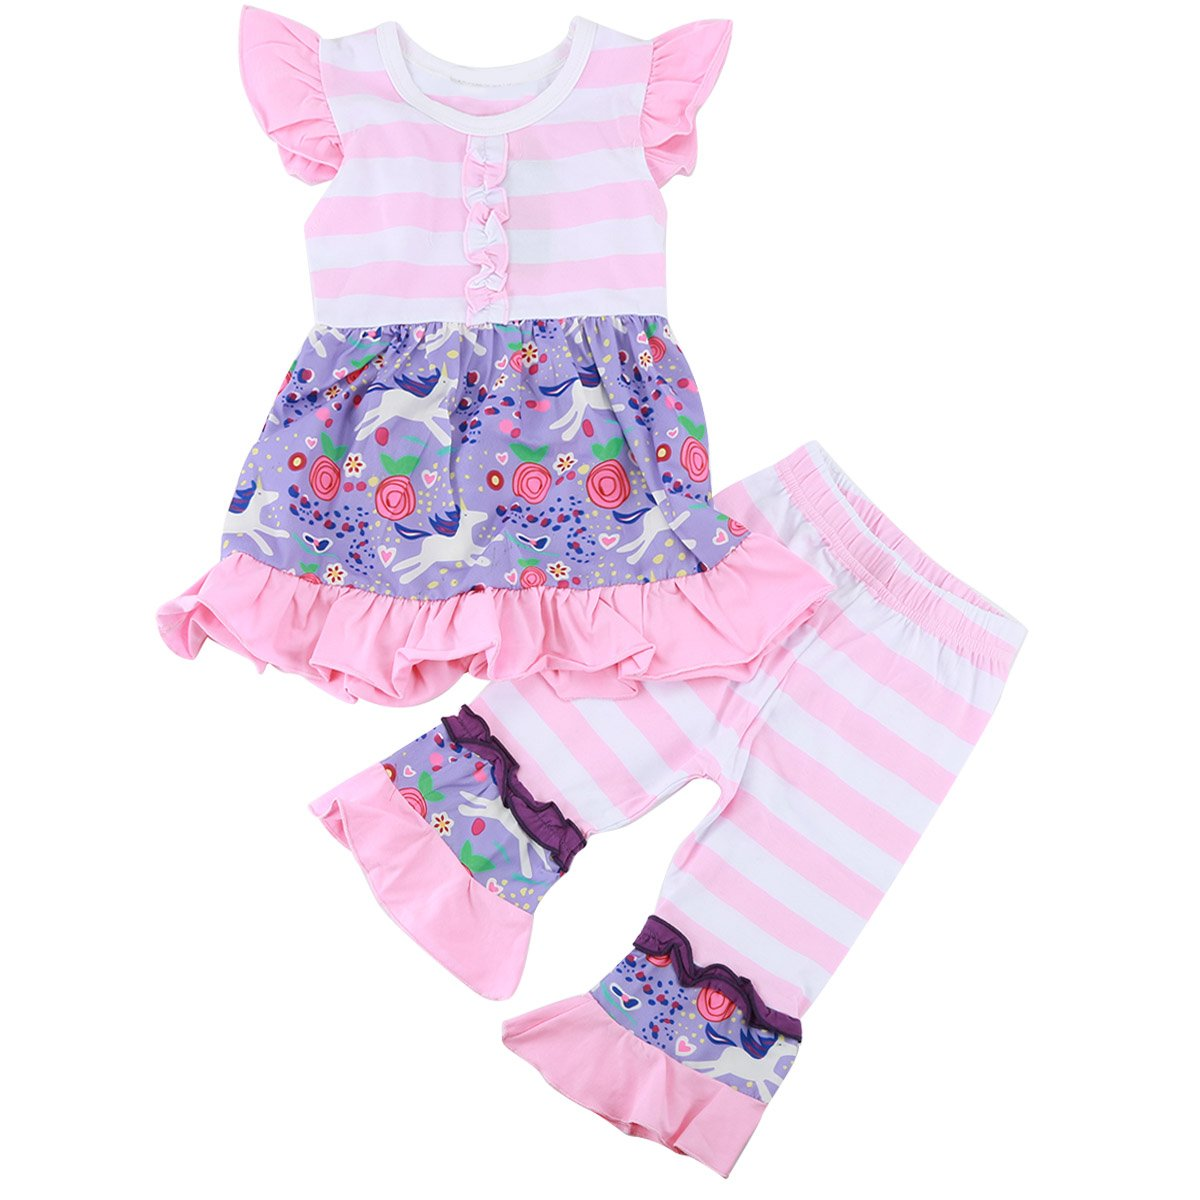 063f17b9f9 New Design with Ruffle Element, Boutique Outfits for 1-6 year Baby girls.  Makes a perfect summer outfit, birthday present or